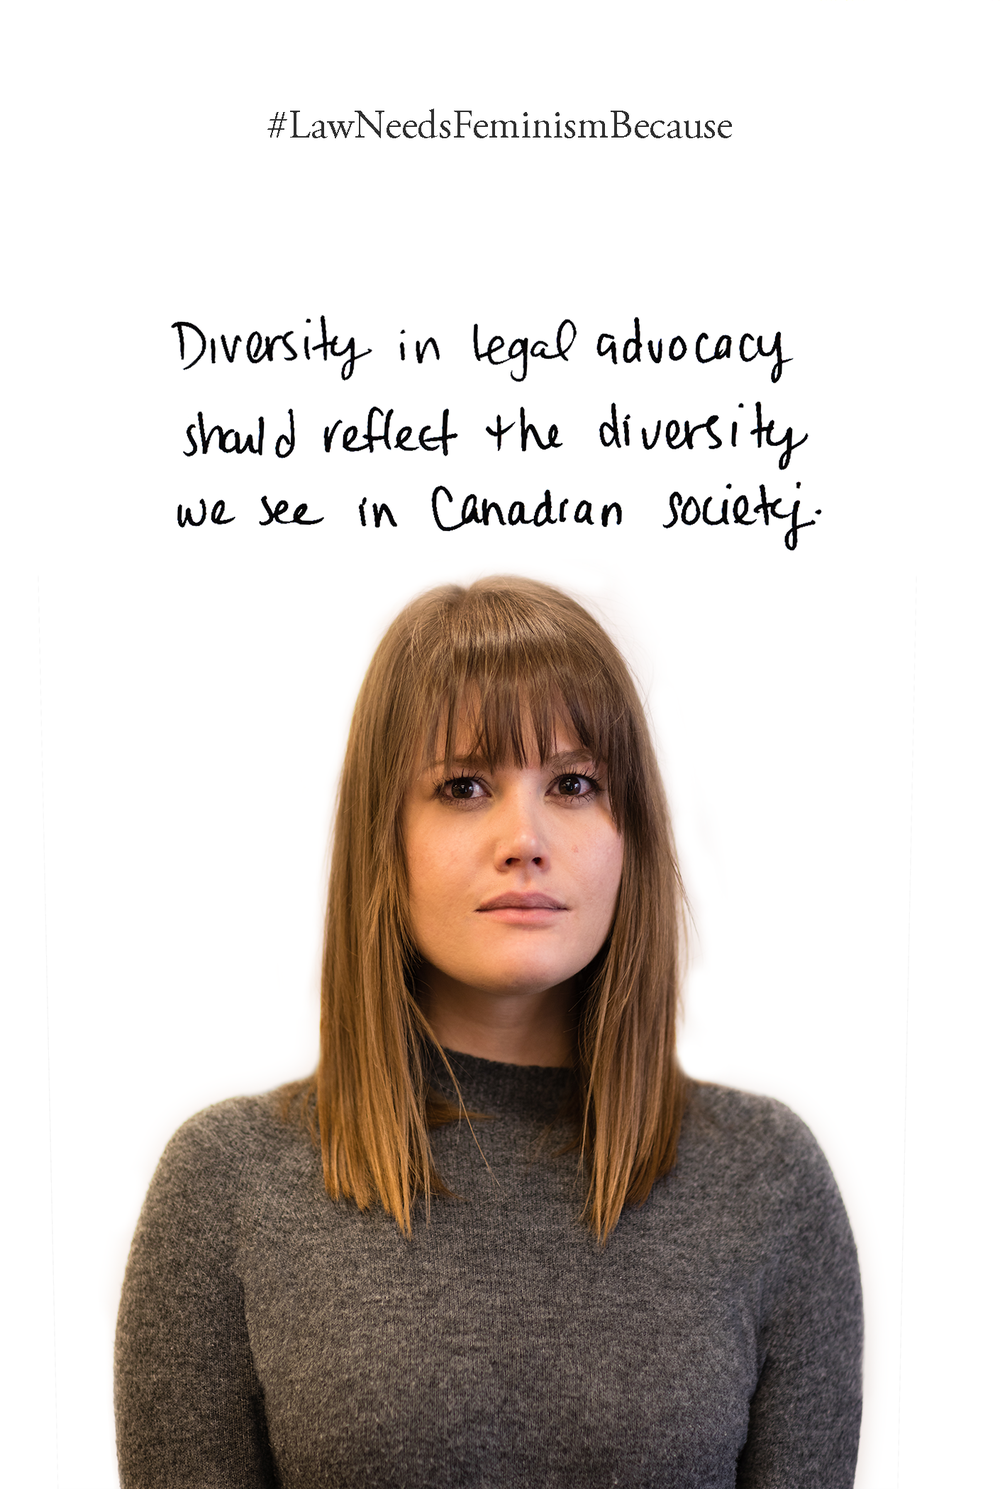 Law Needs Feminism Because  Diversity in legal advocacy should reflect the diversity we see in Canadian society.